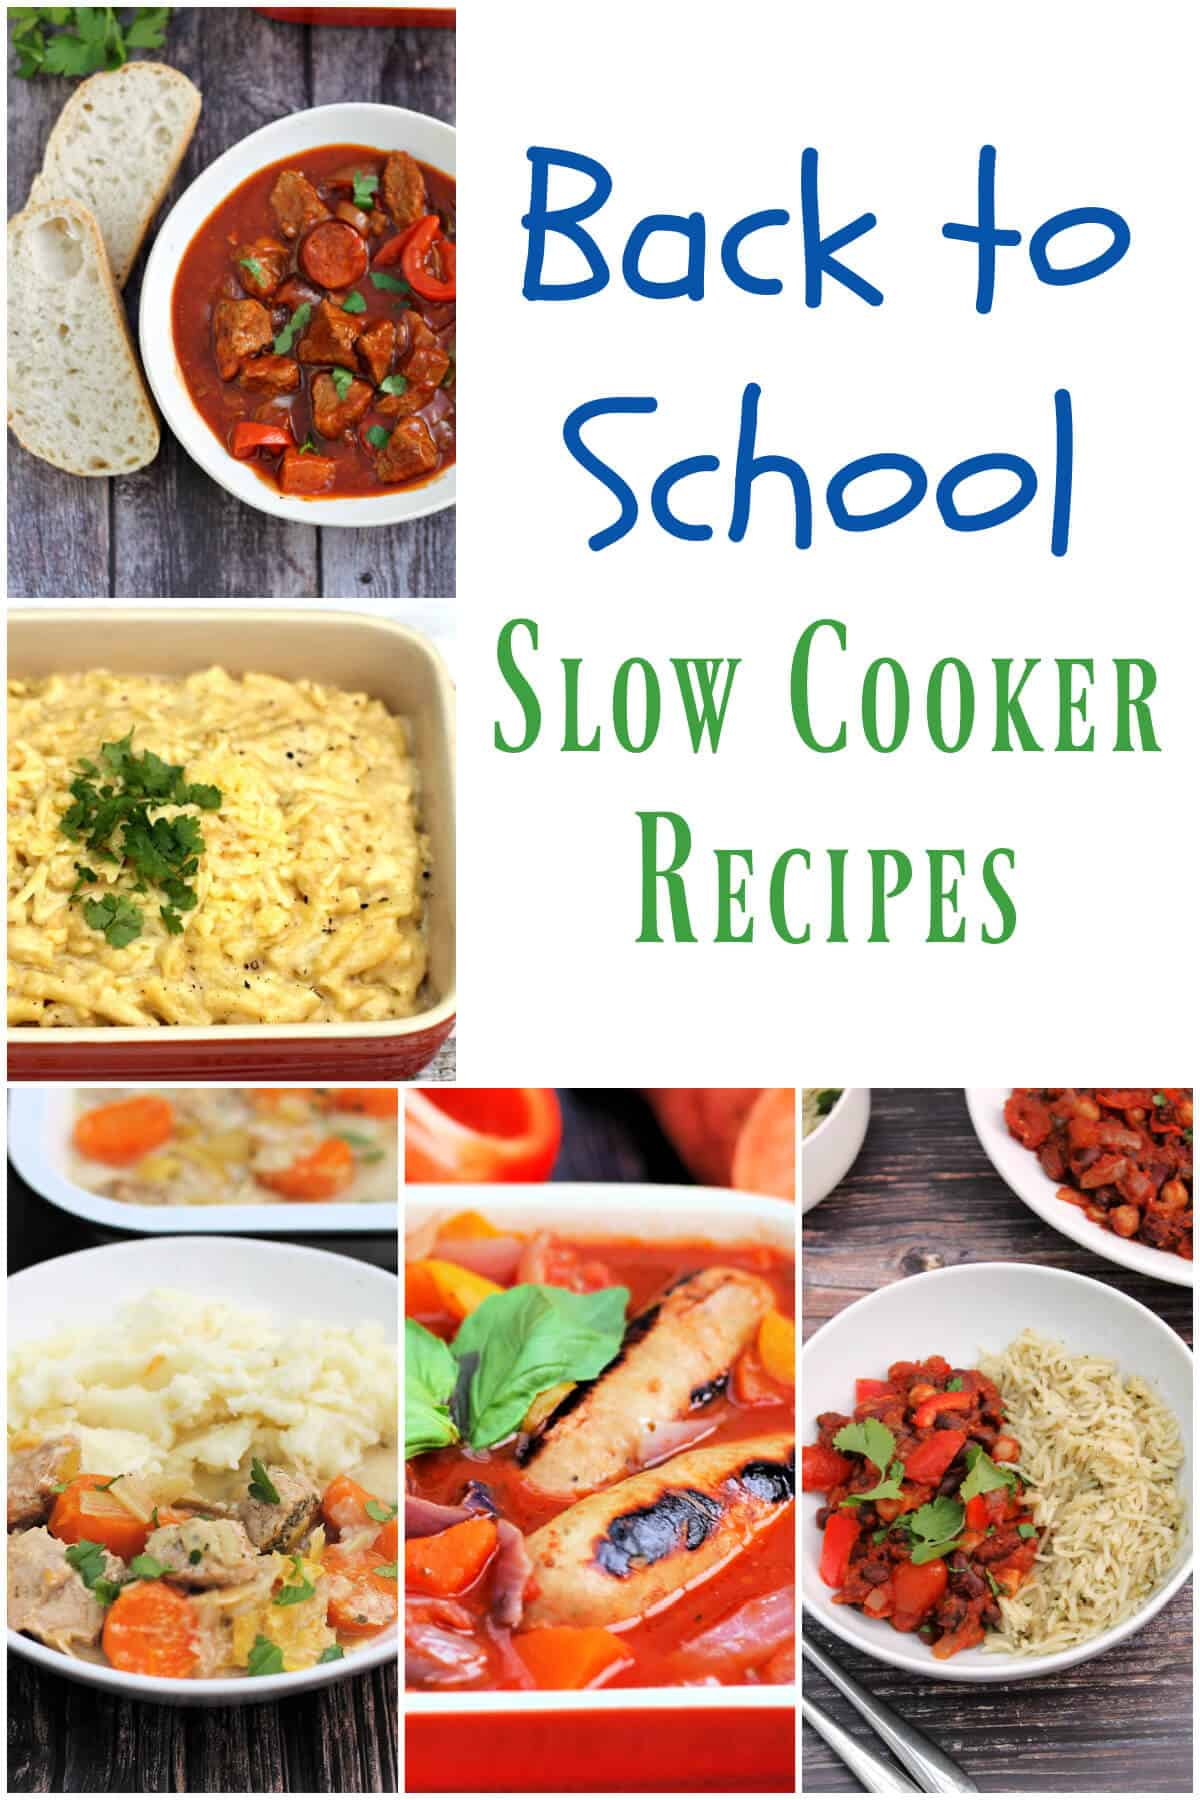 Collage of back to school slow cooker recipes.